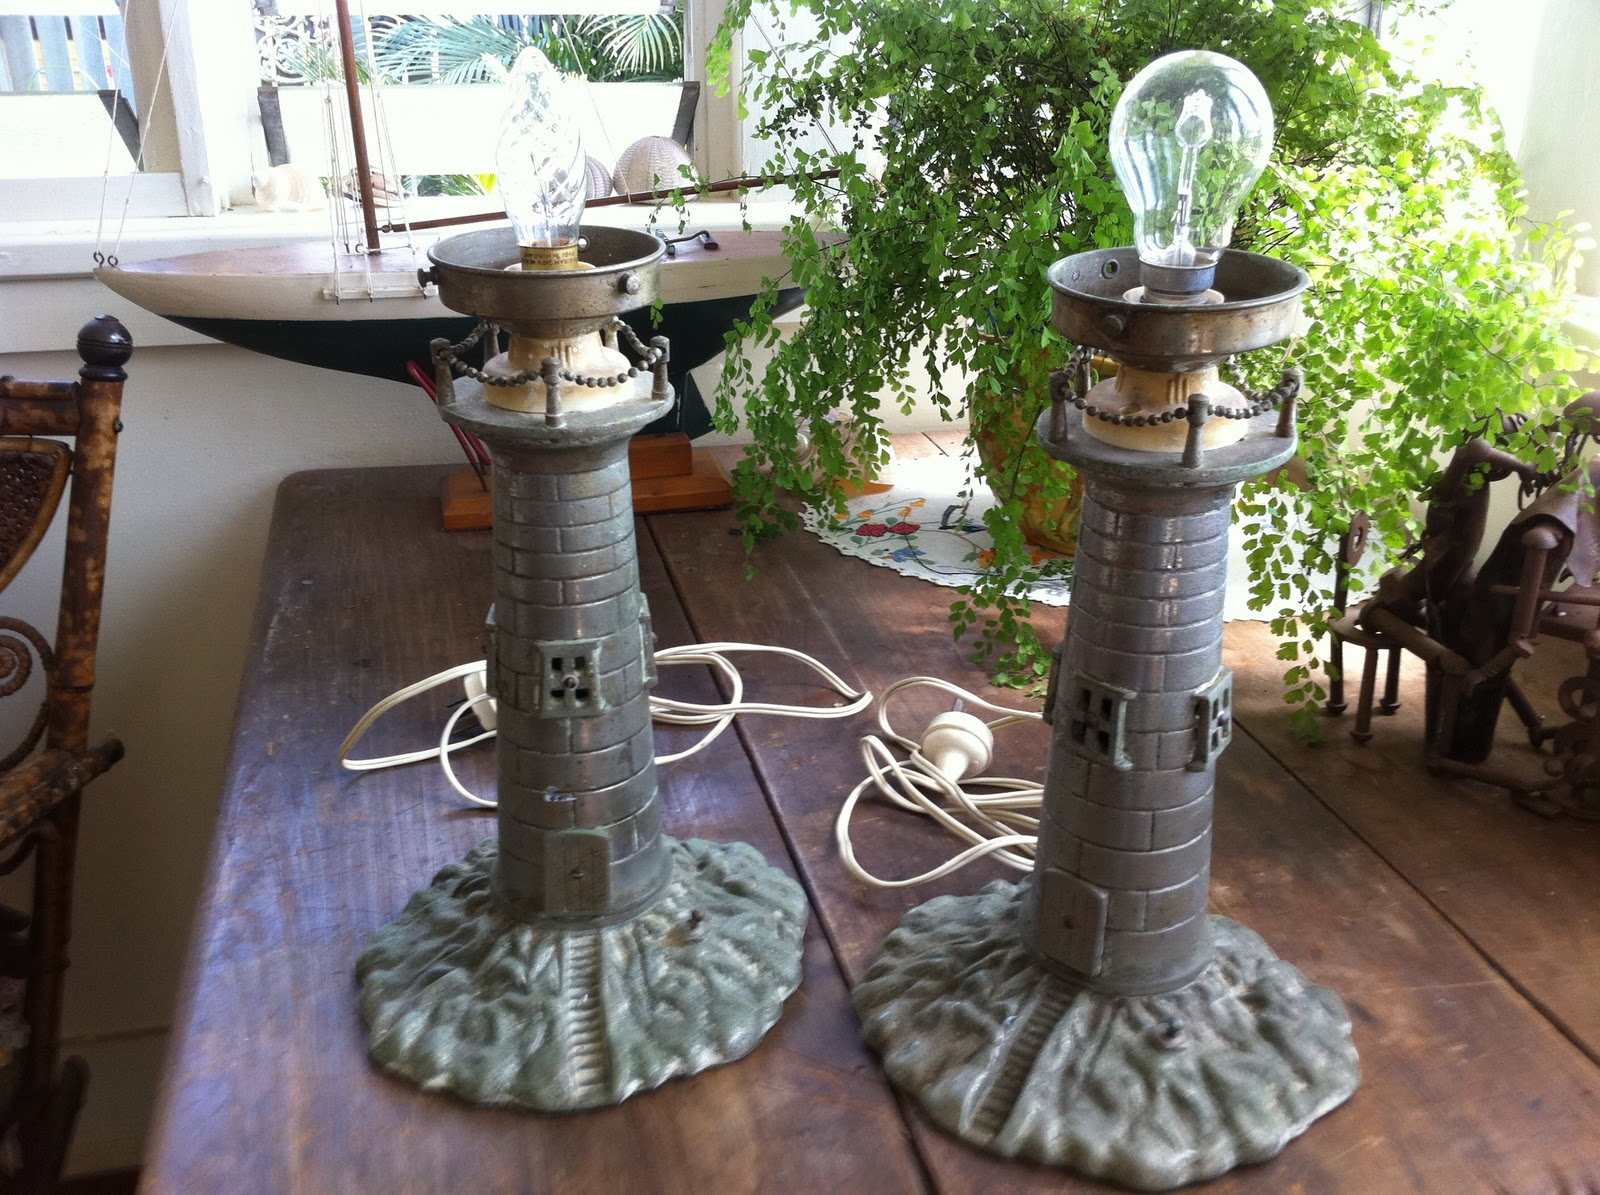 beverly memory look of x lamp lamps lighthouse photo nice